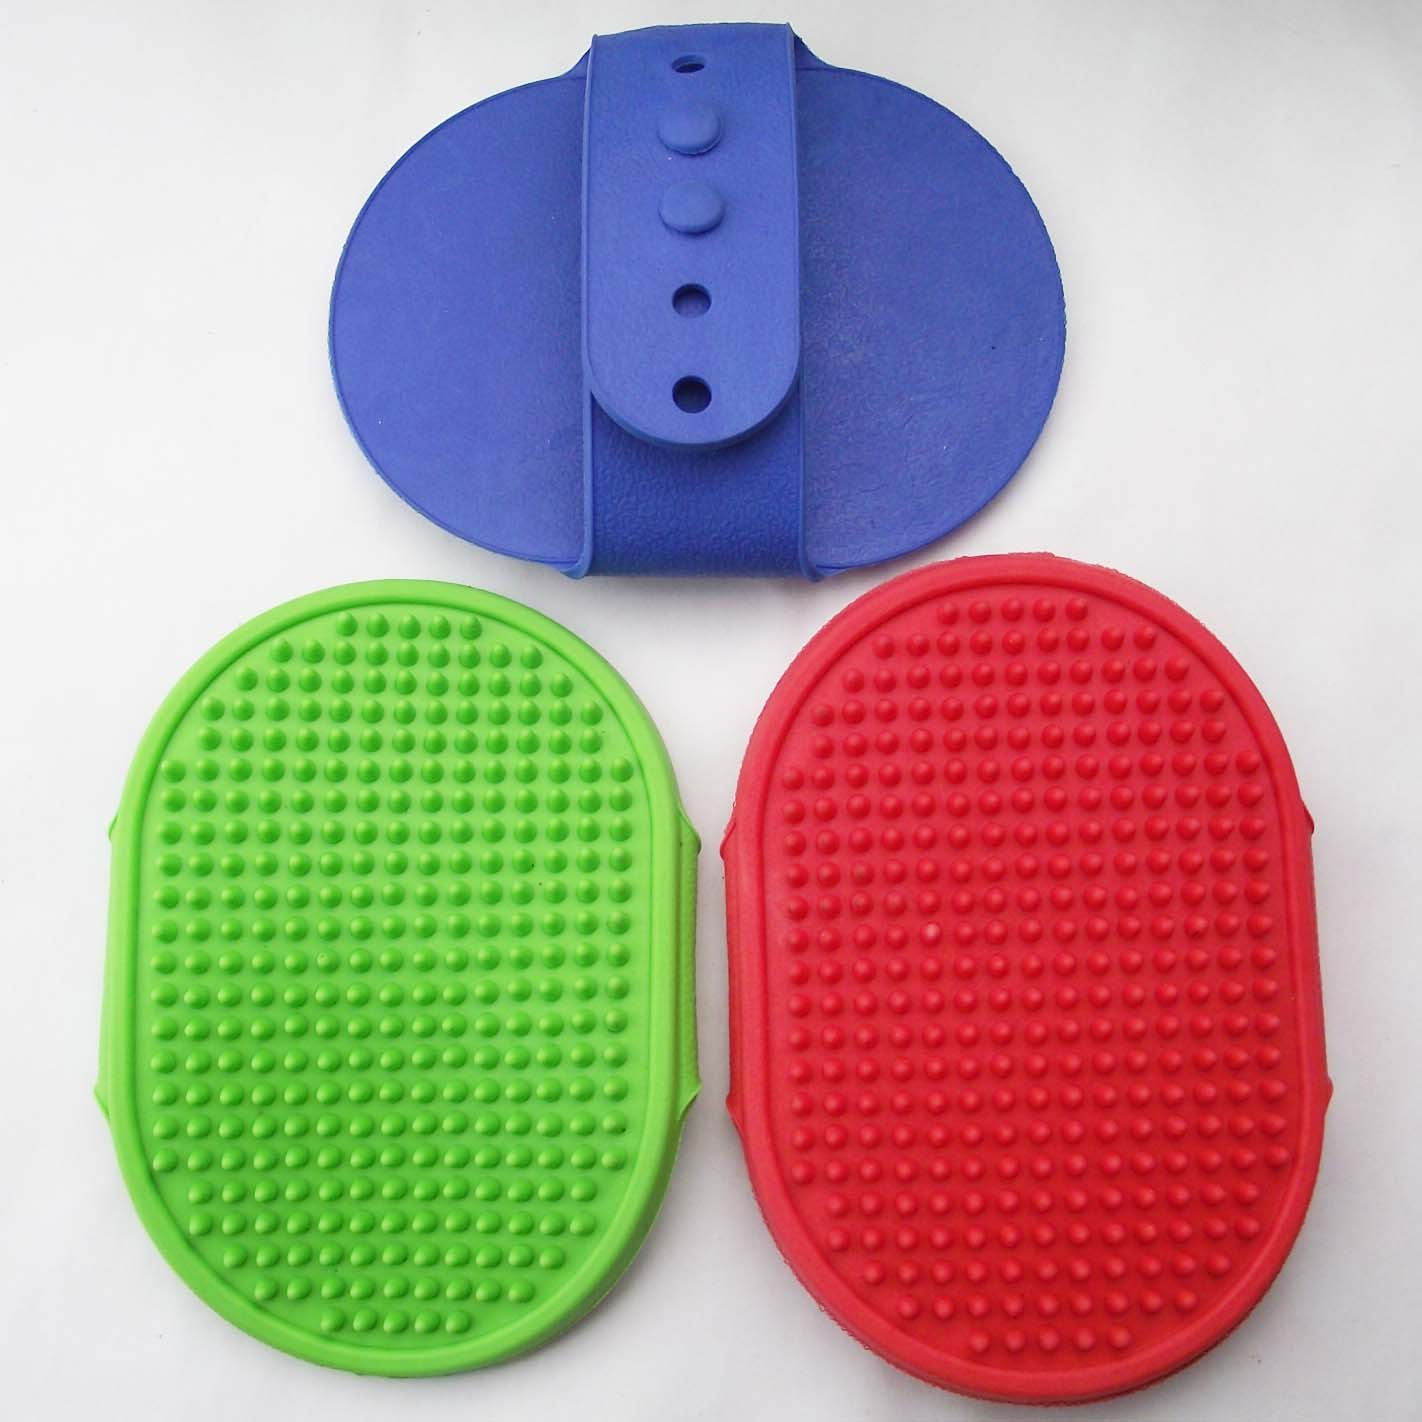 Soft rubber back button pet bath brush flat massage brush pet brush dog combs(China (Mainland))